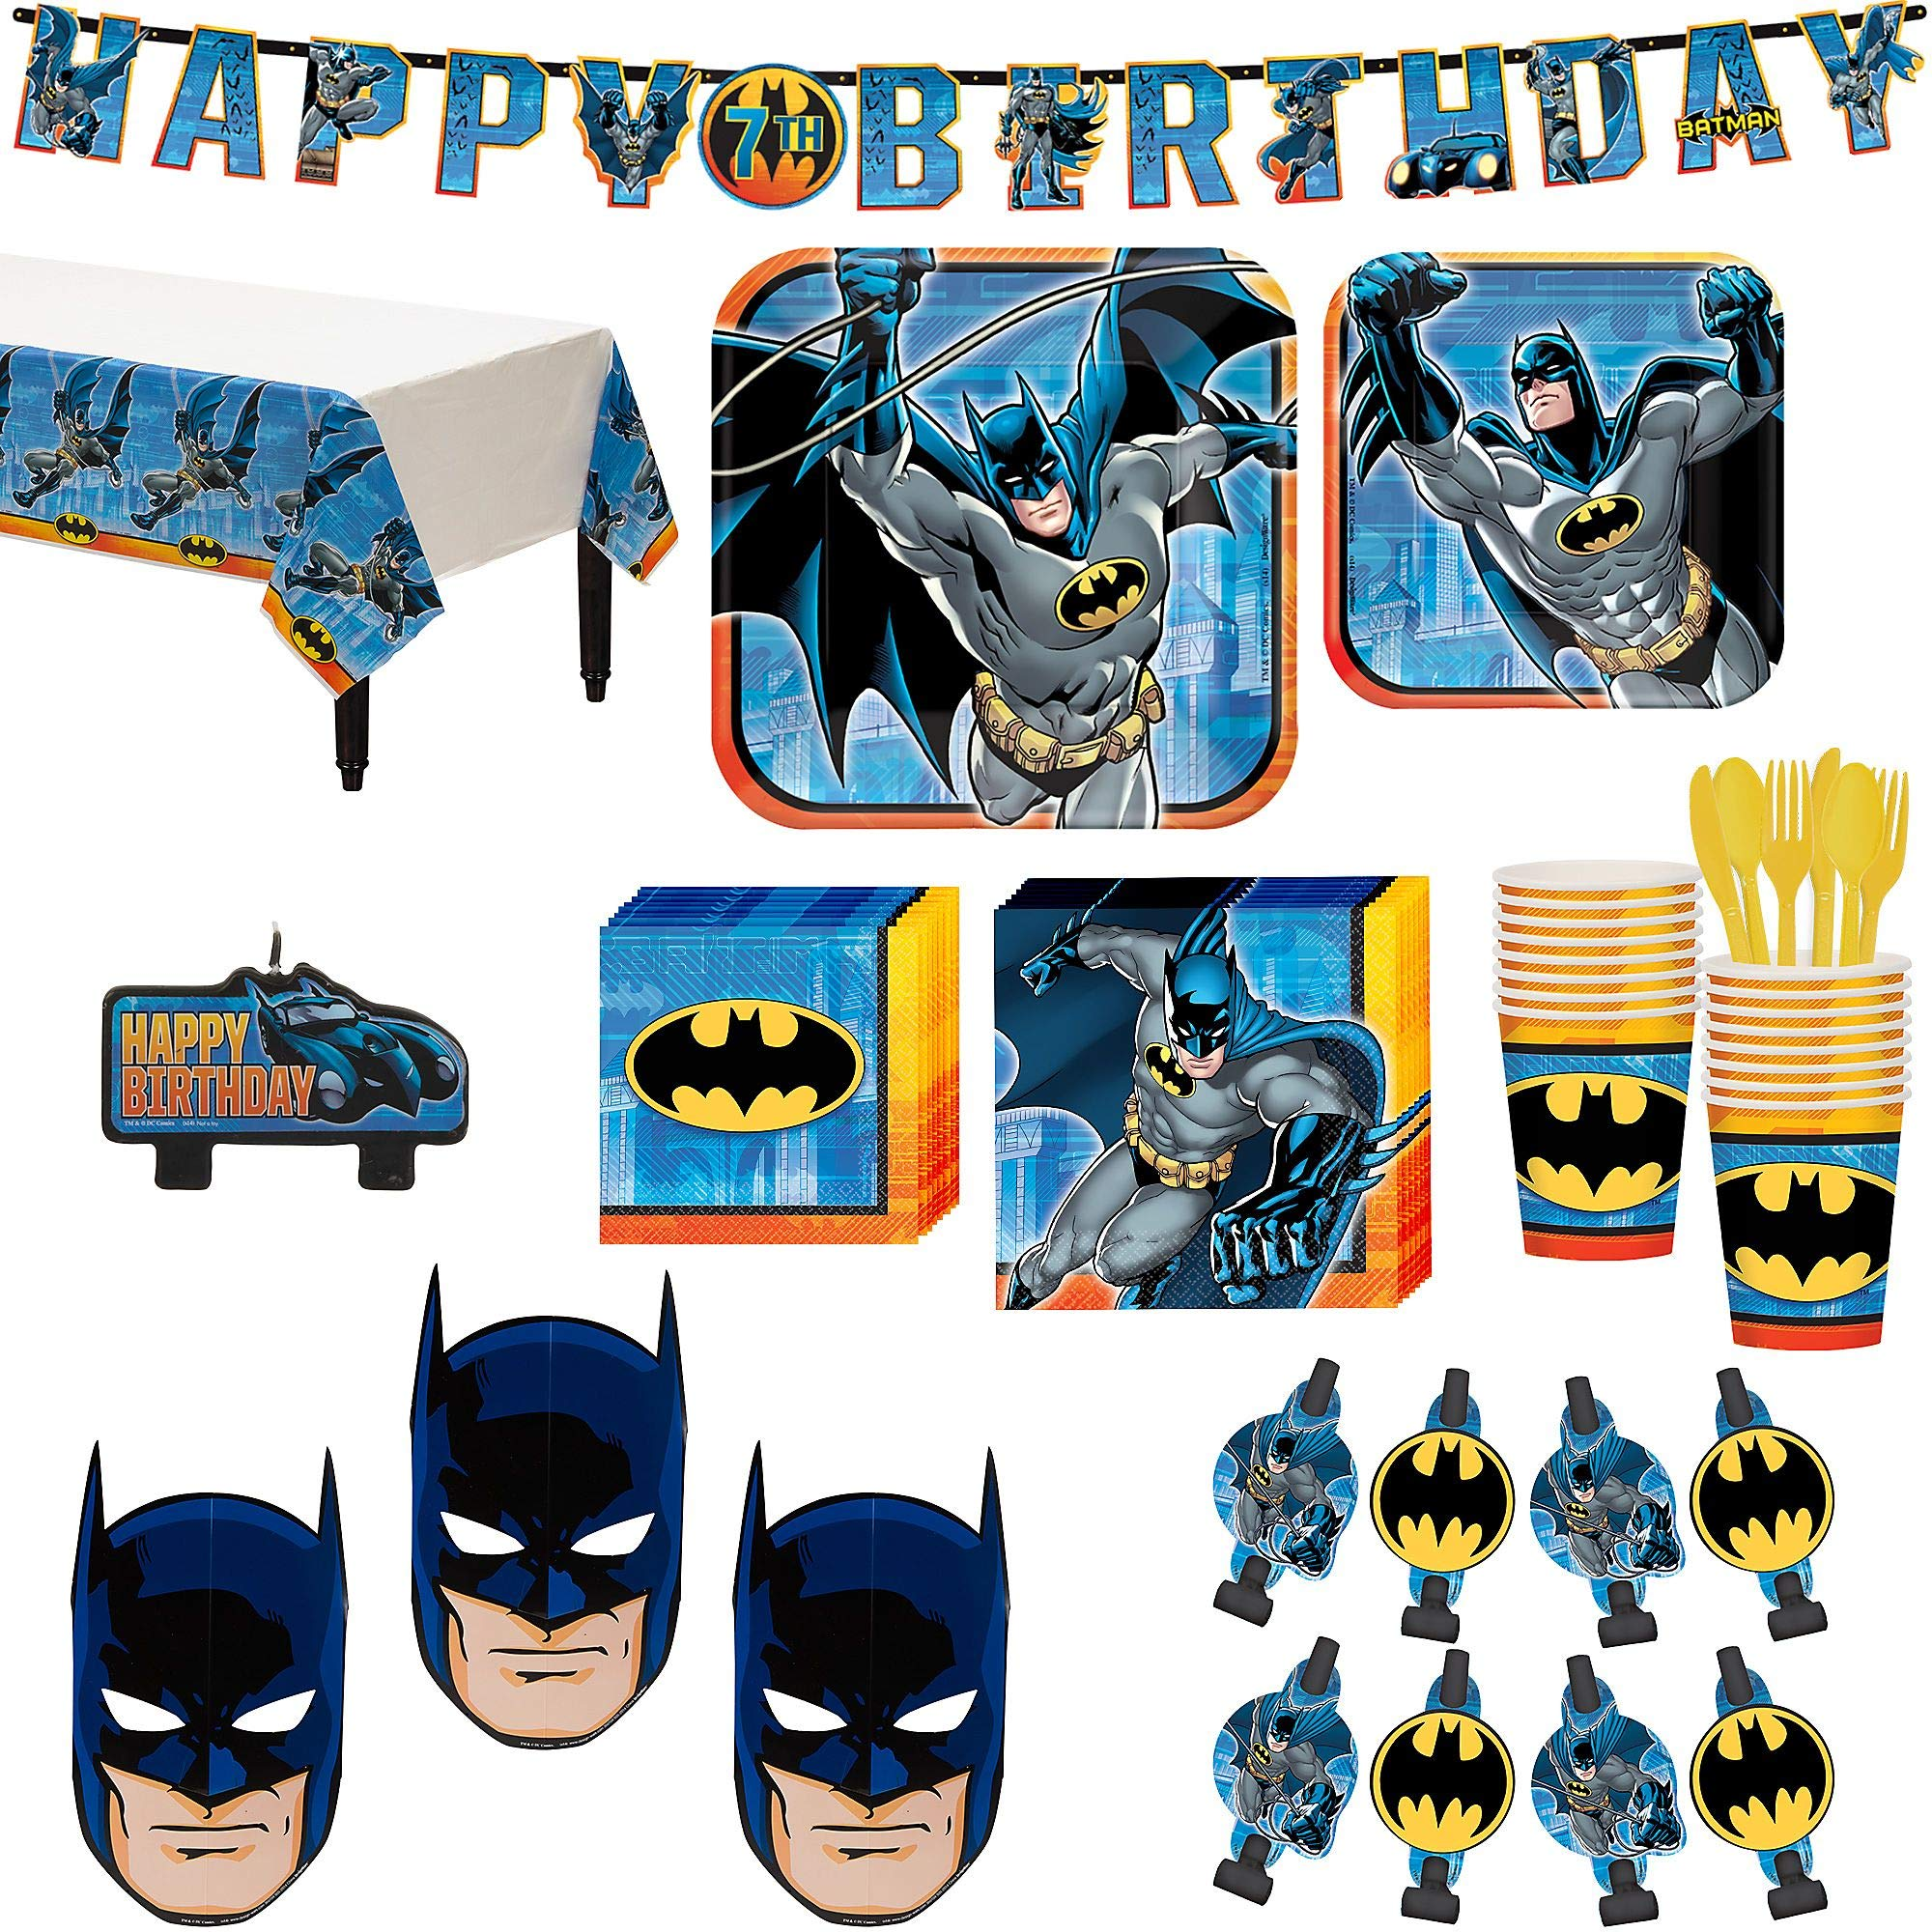 Batman Superhero Birthday Party Kit, Includes Happy Birthday Banner, Candles and Eye Masks, Serves 16, by Party City